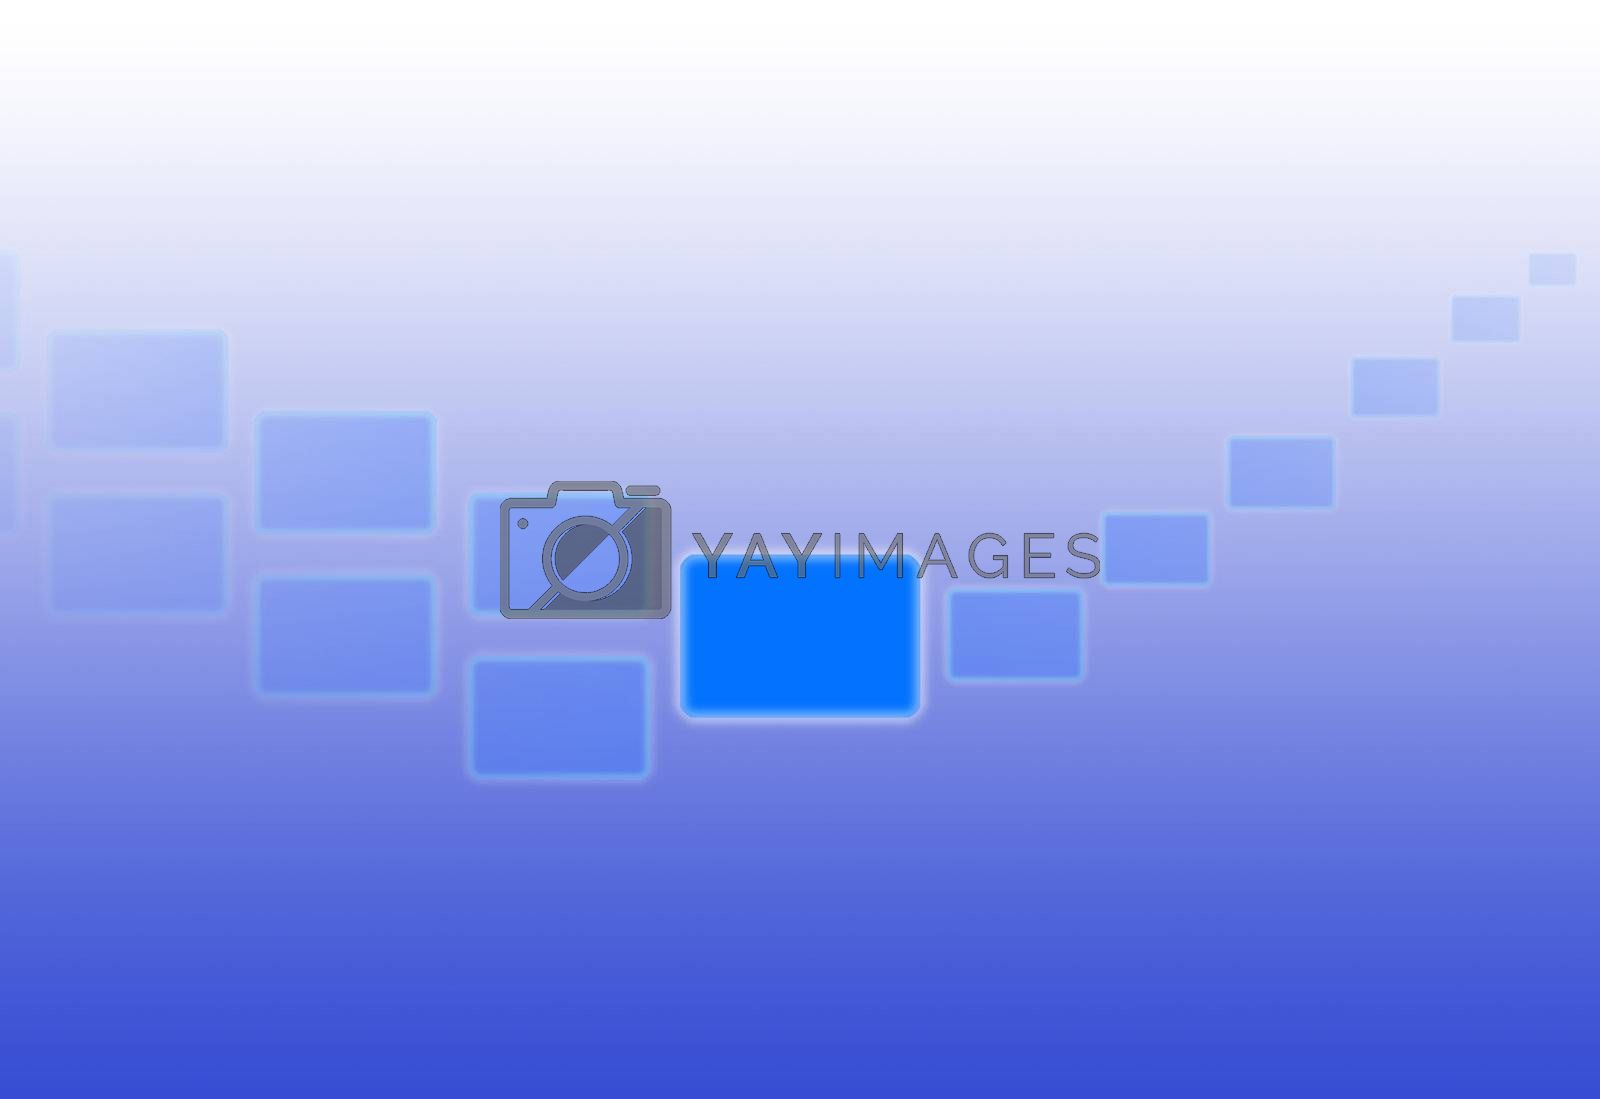 Blue rectangular shapes forming a curve against a gradient background